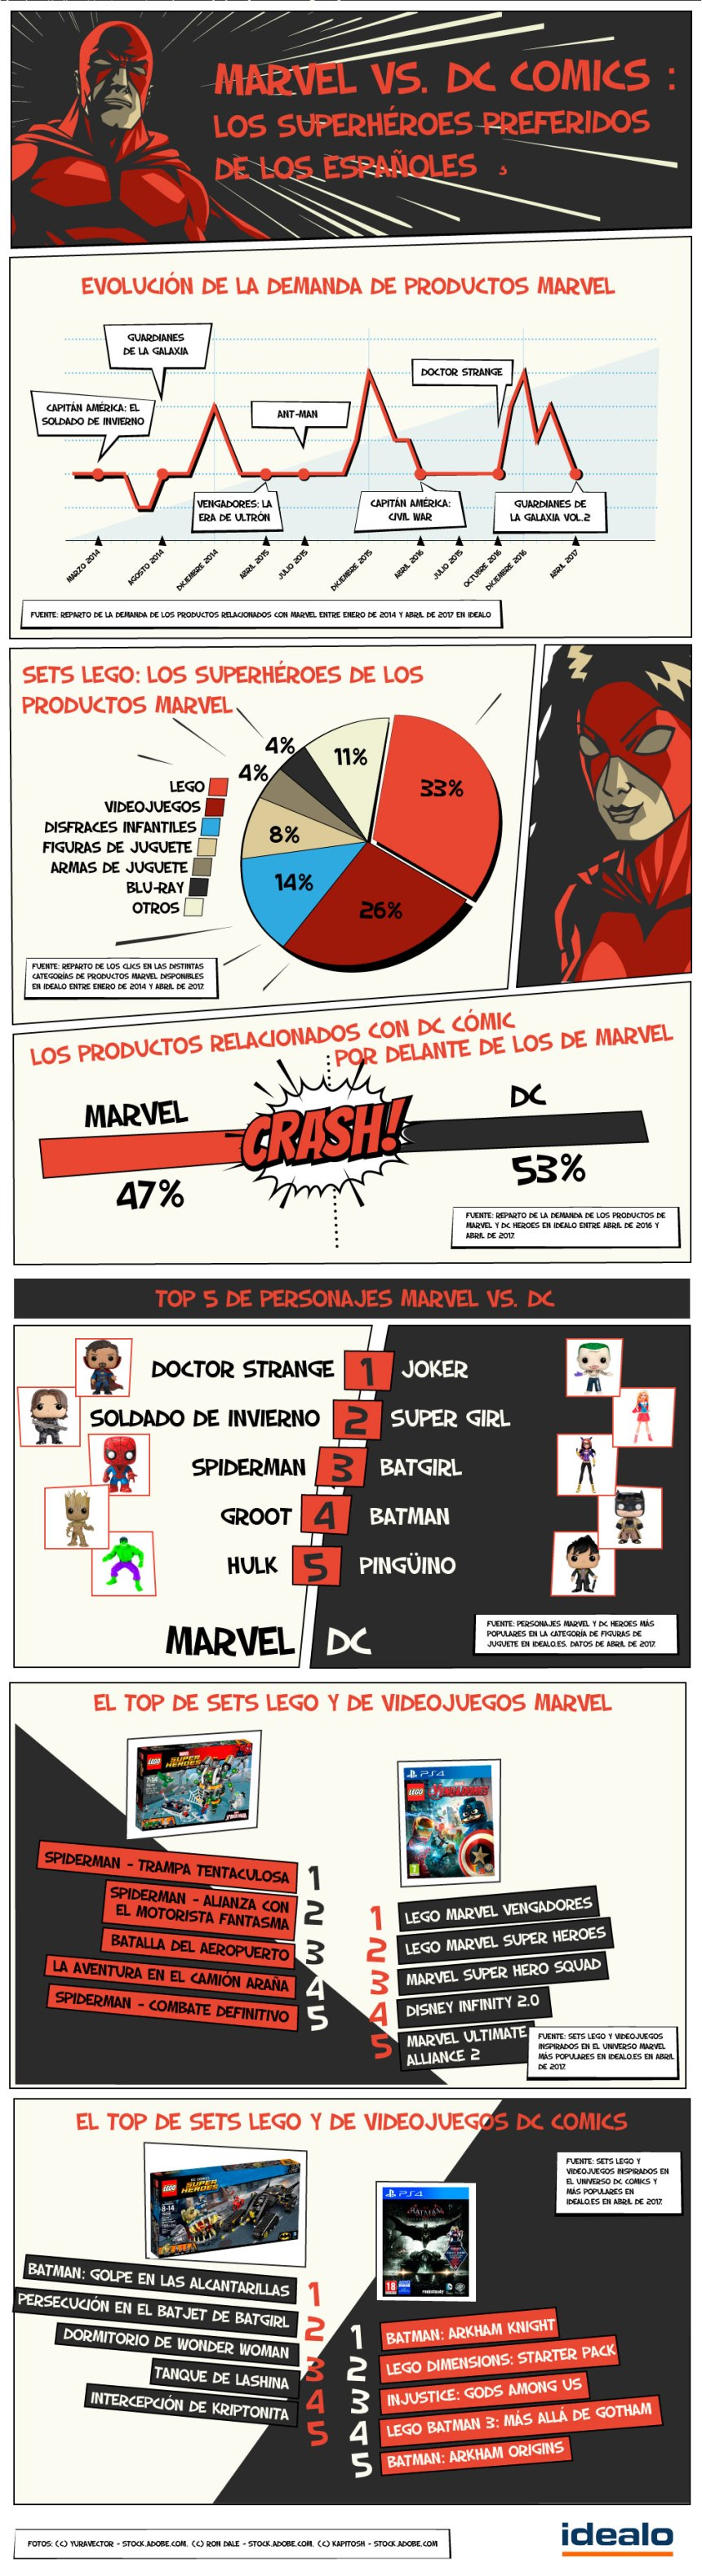 Marvel vs DC Comics: la batalla de los superhéroes